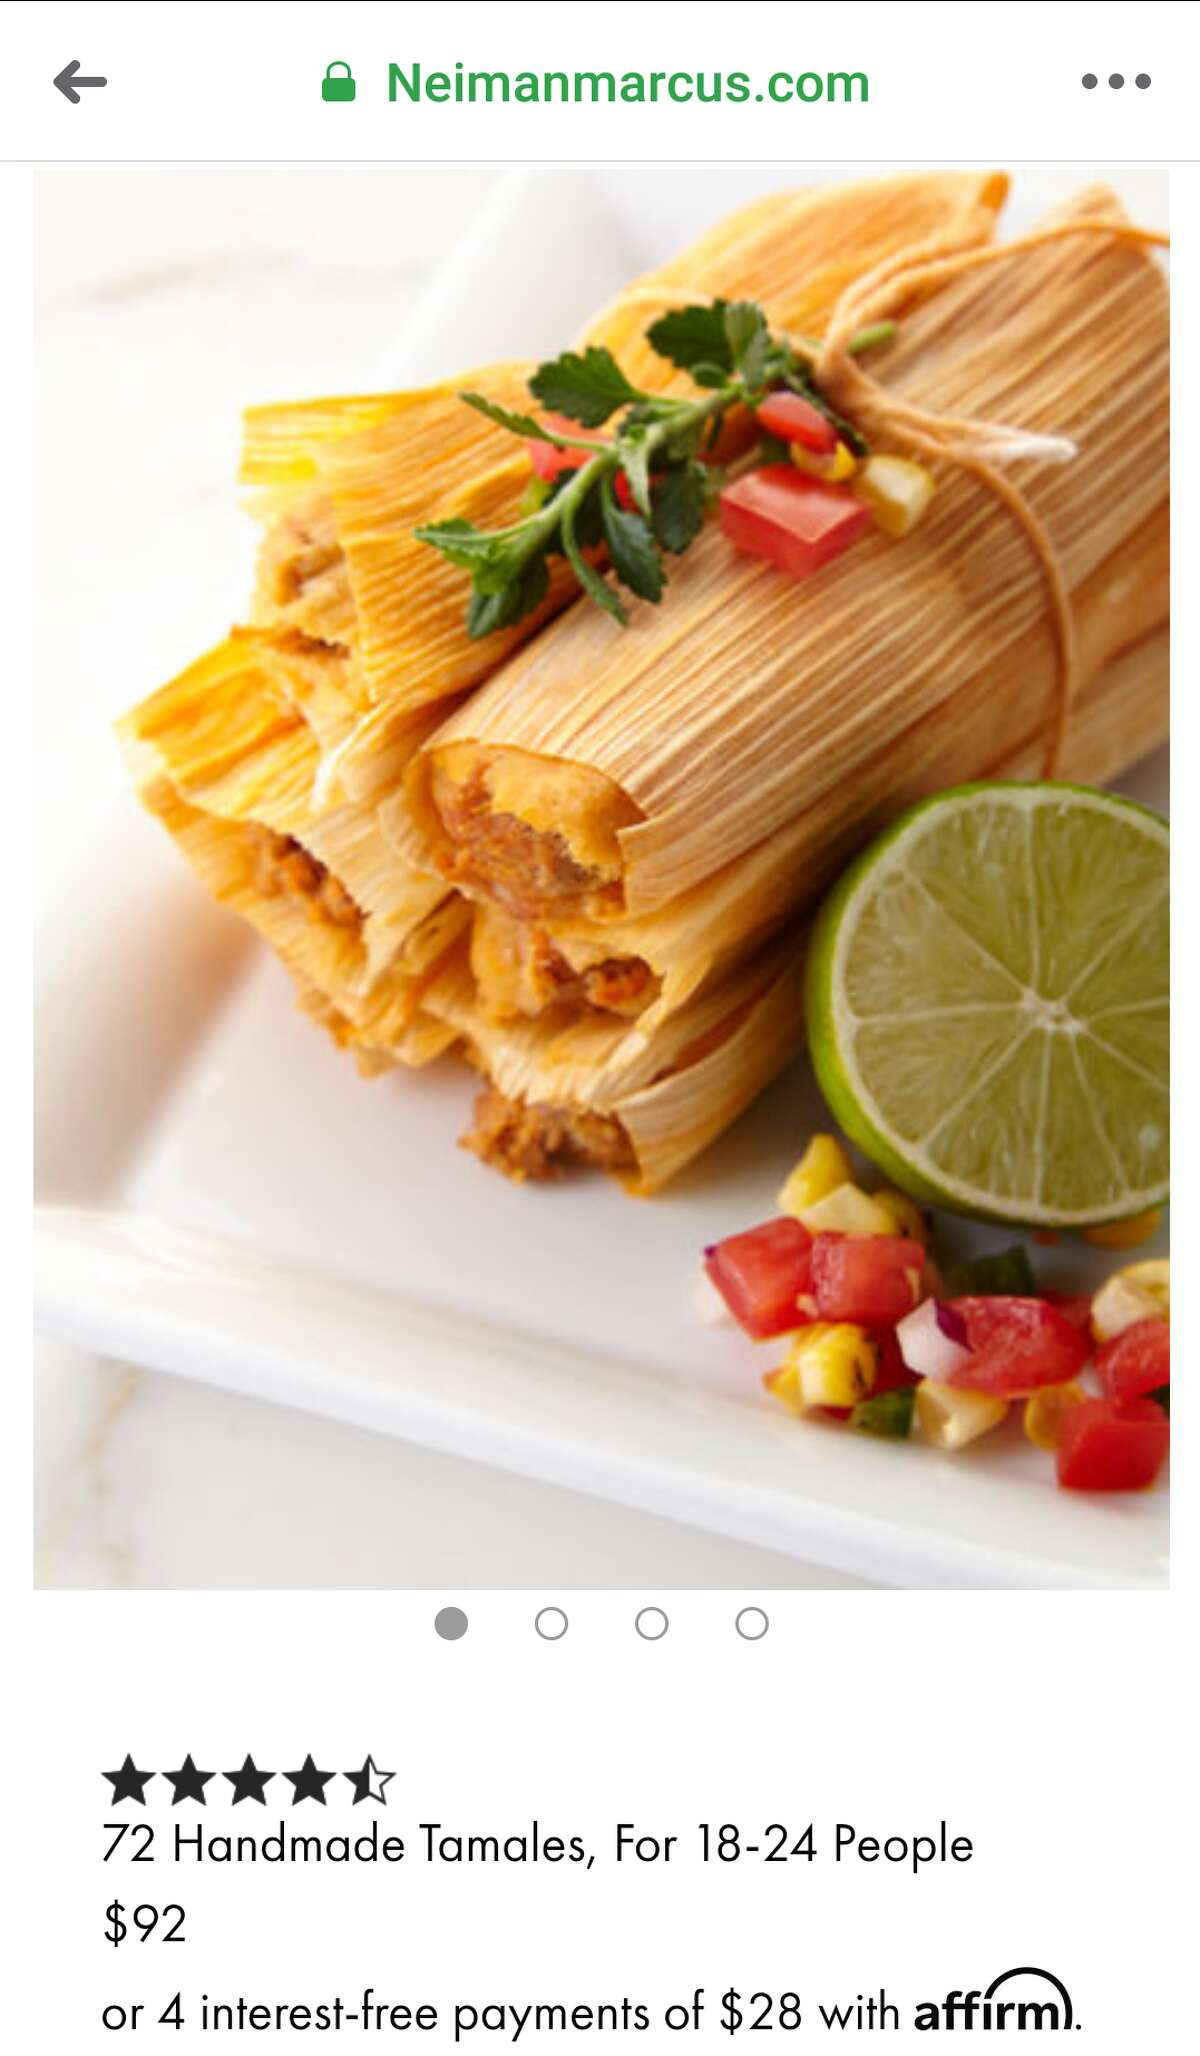 Tamales come in assorted flavors such as pork, chicken, and beef.